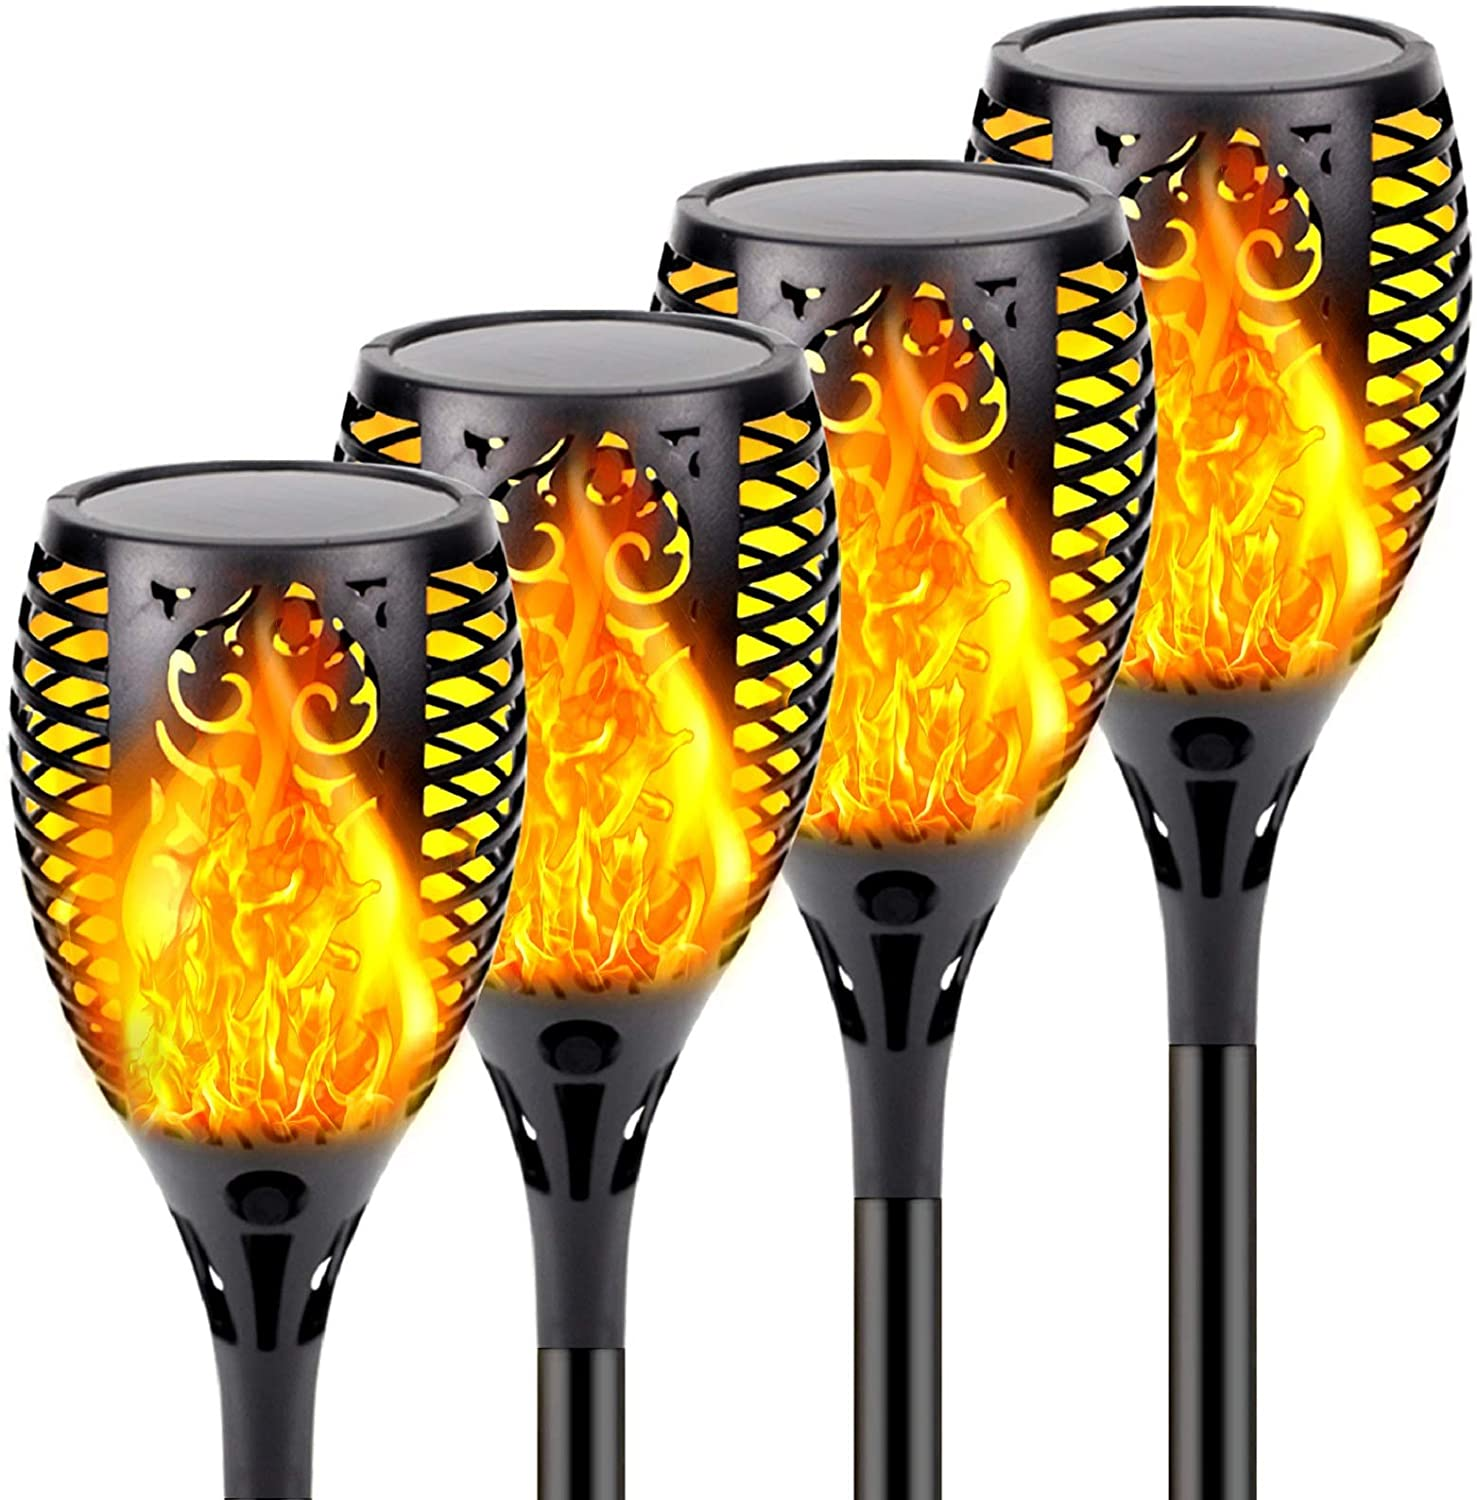 AliExpress - Solar Flame Lights Waterproof Flickering Flames Torches Lights Outdoor Solar Flame Lights Decoration Lighting Dusk to Dawn Auto